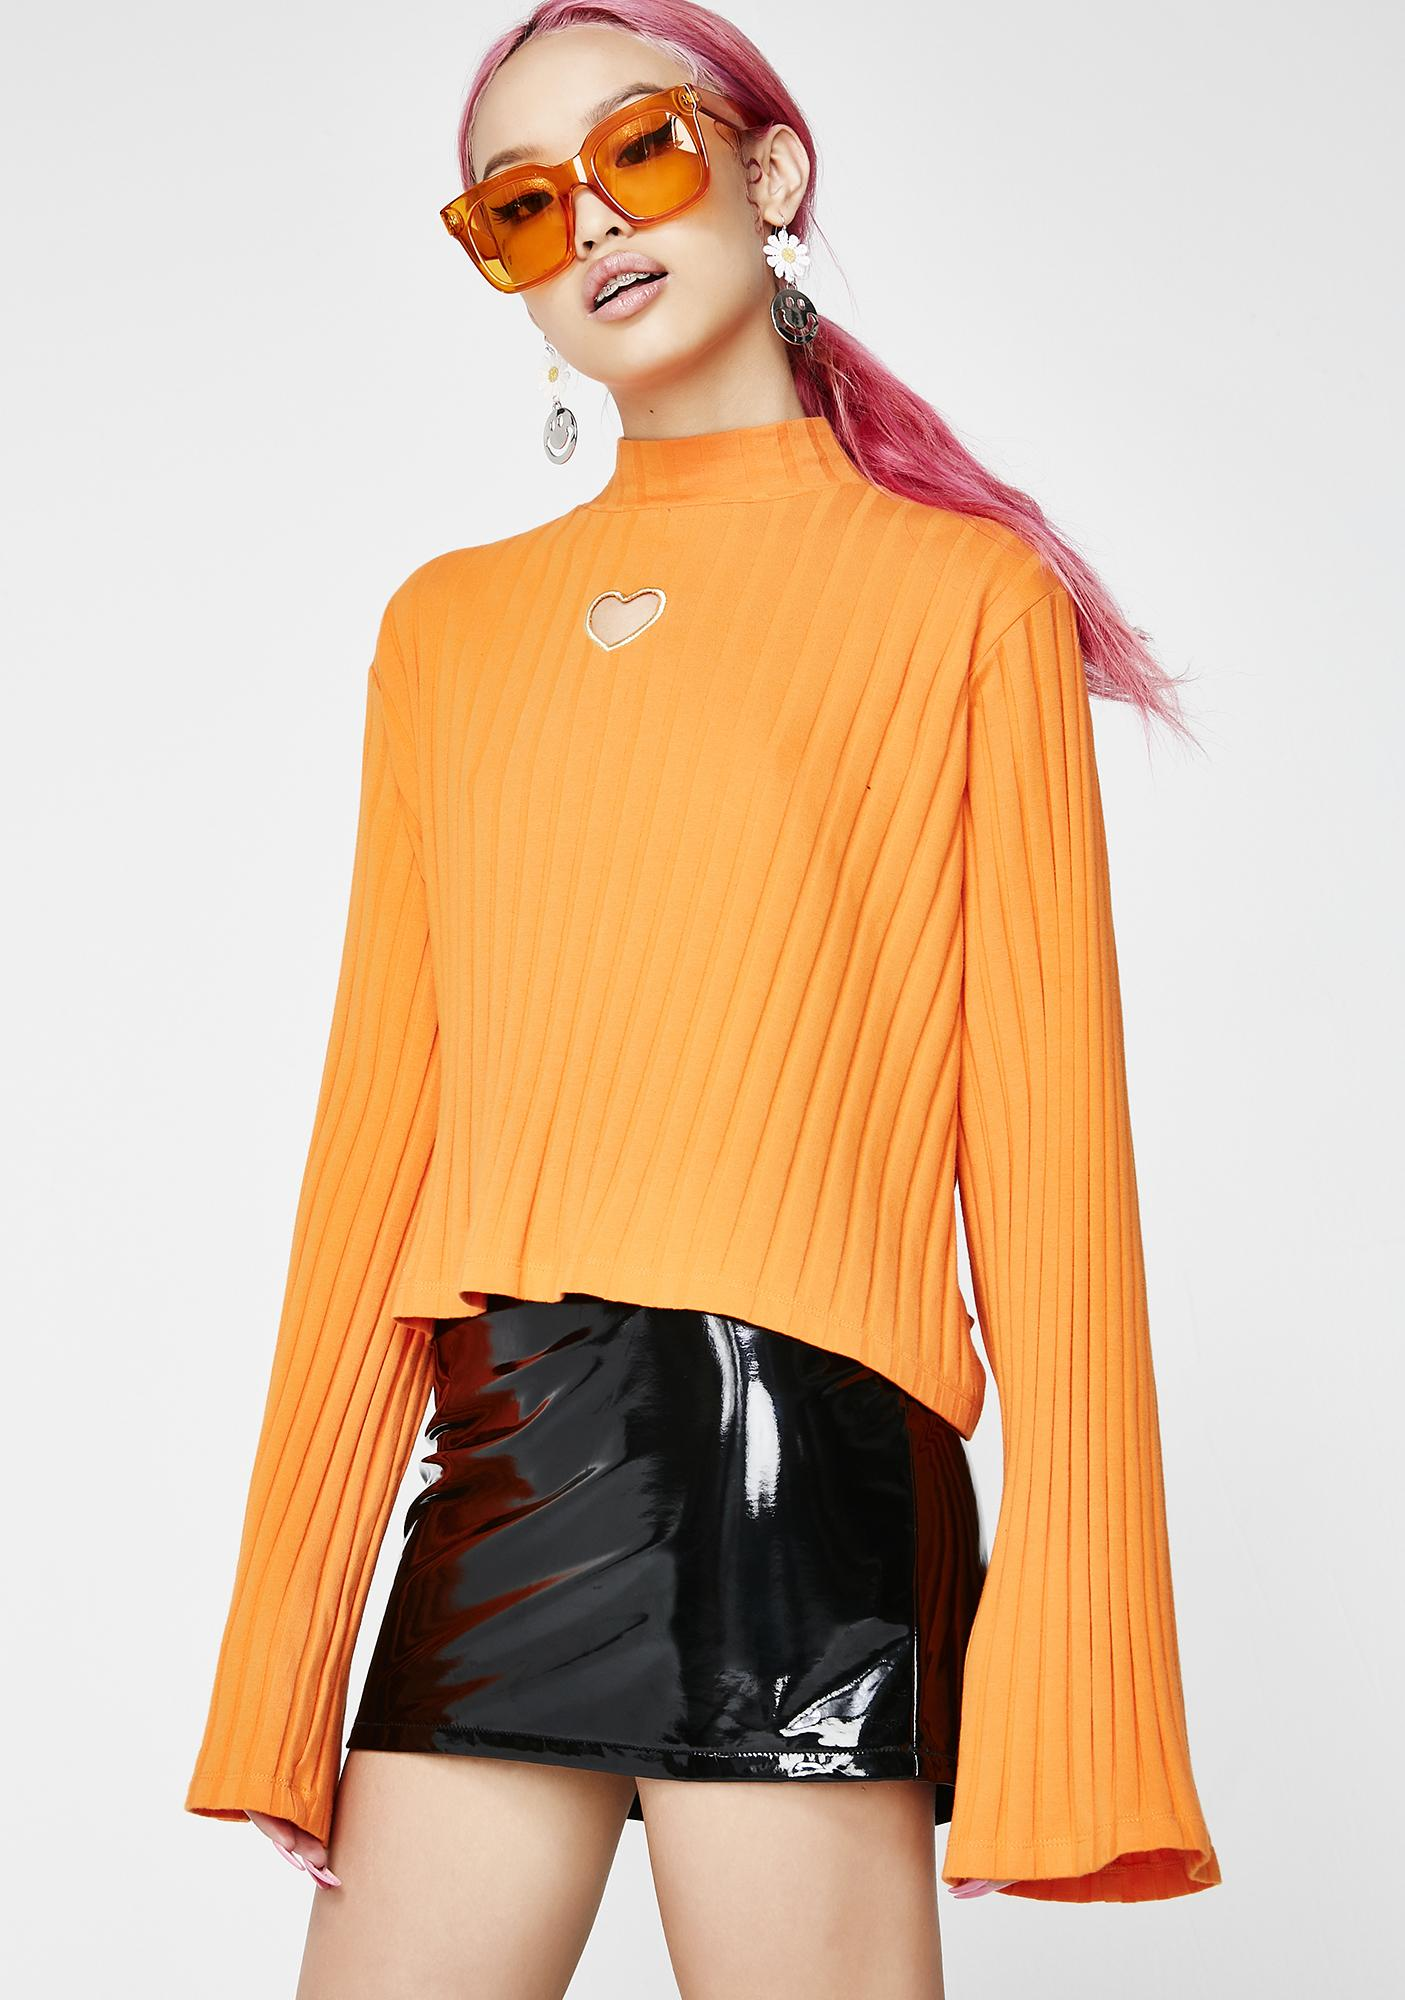 Lazy Oaf Orange Heart All Out Top